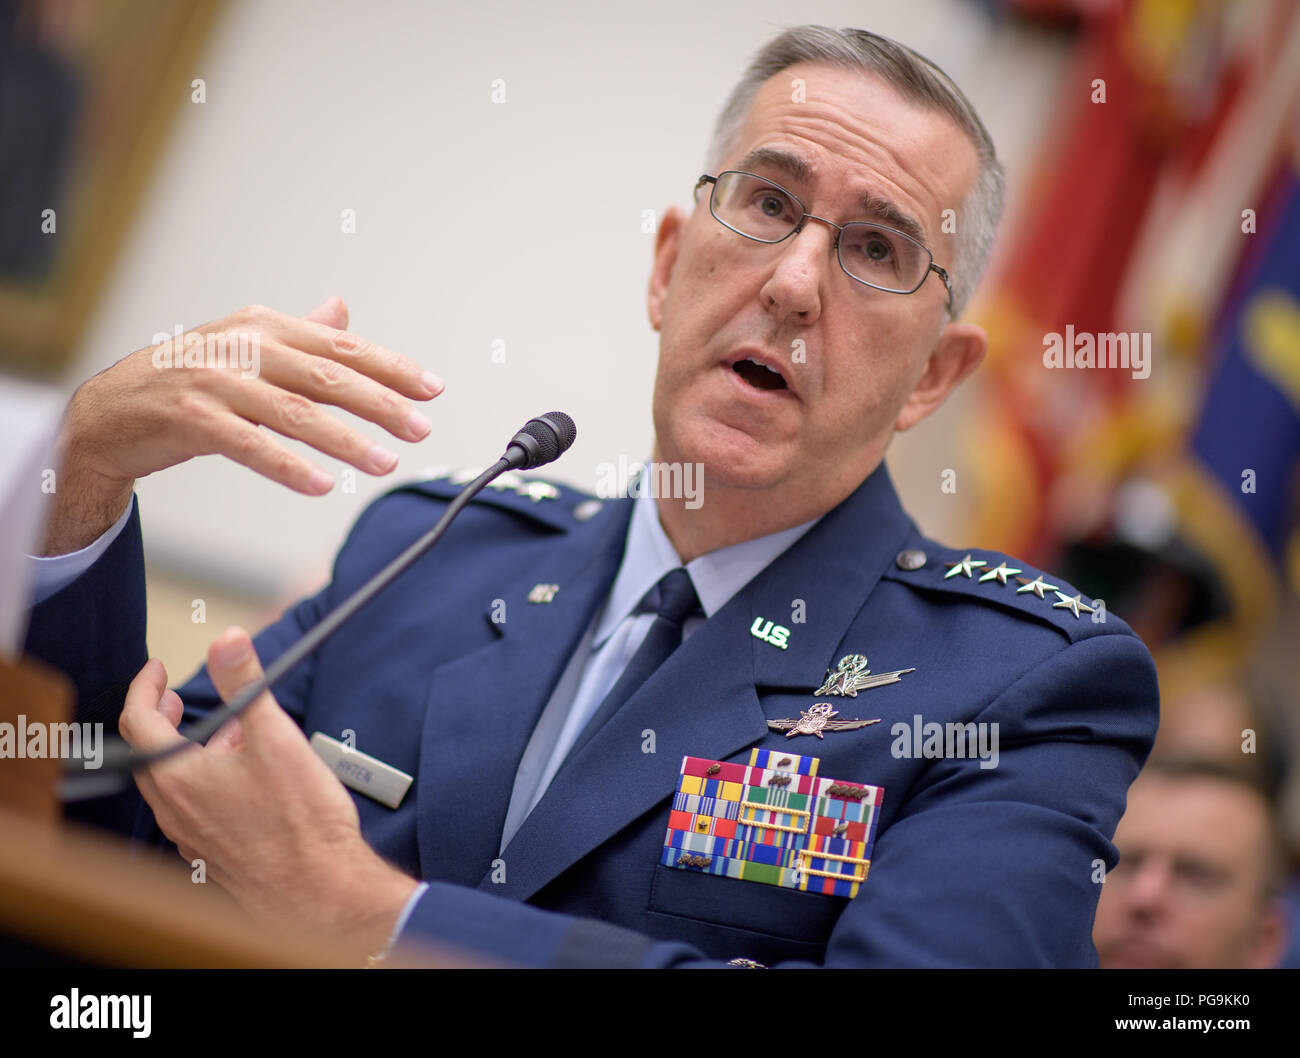 Commander, U.S. Strategic Command, General John Hyten testifies before the House Subcommittee on Strategic Forces during a hearing on Space Situational Awareness: Whole of Government Perspectives on Roles and Responsibilities, Friday, June 22, 2018 at the Rayburn House Office Building in Washington. Stock Photo